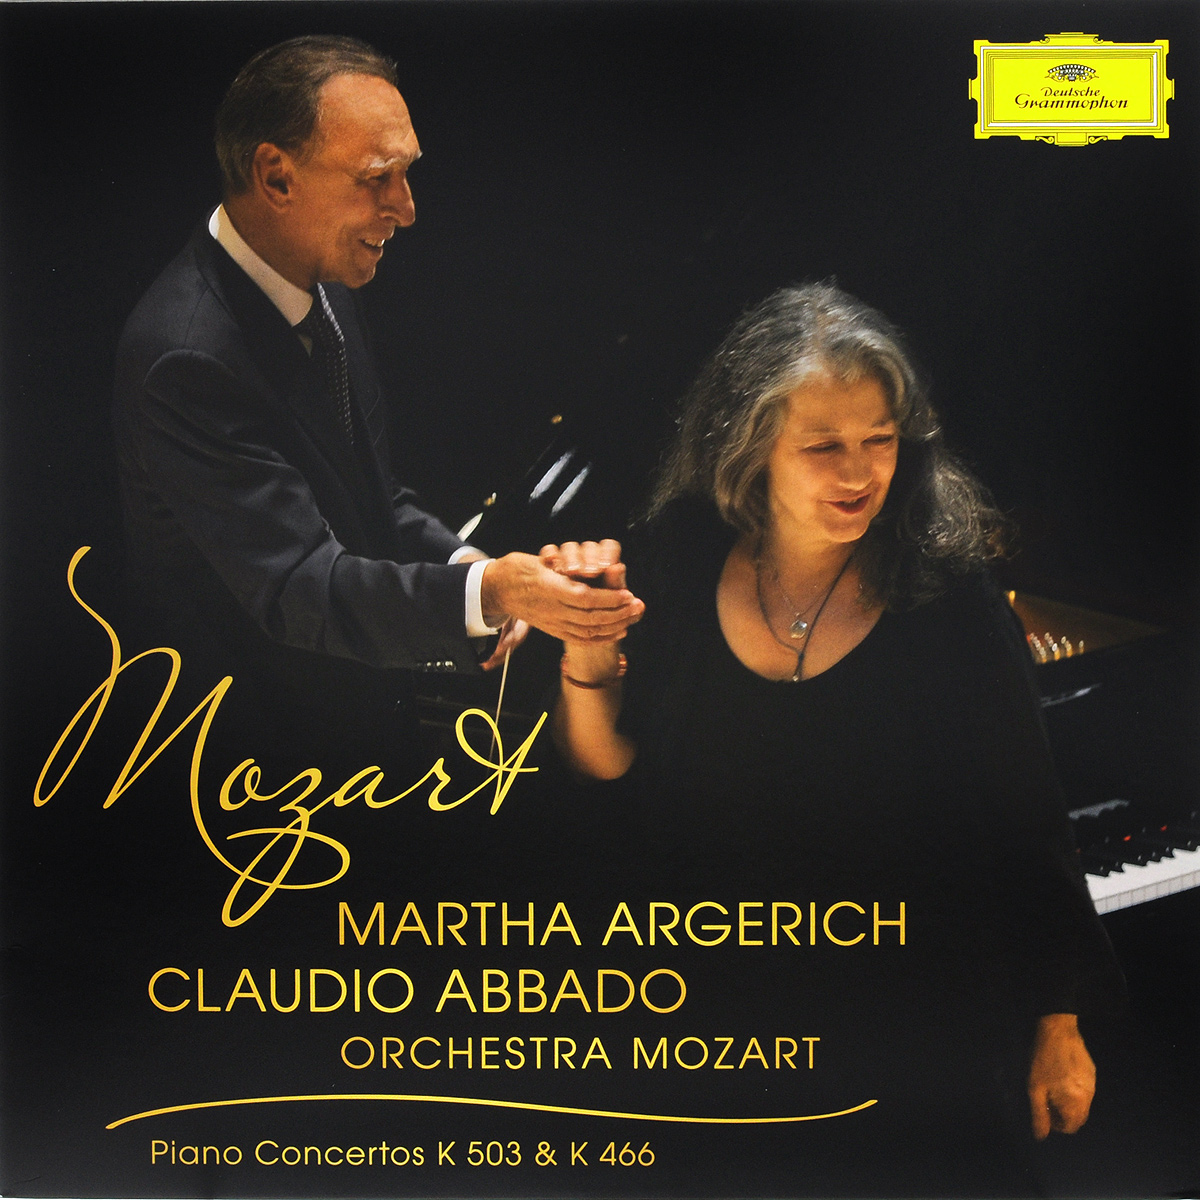 Клаудио Аббадо,Orchestra Mozart,Марта Аргерих Mozart. Piano Concertos K 503 & K 446. Martha Argerich / Orchestra Mozart / Claudio Abbado (LP) марта аргерих berliner philharmoniker клаудио аббадо the london symphony orchestra mahler chamber orchestra orchestra mozart martha argerich page 7 page 4 page 7